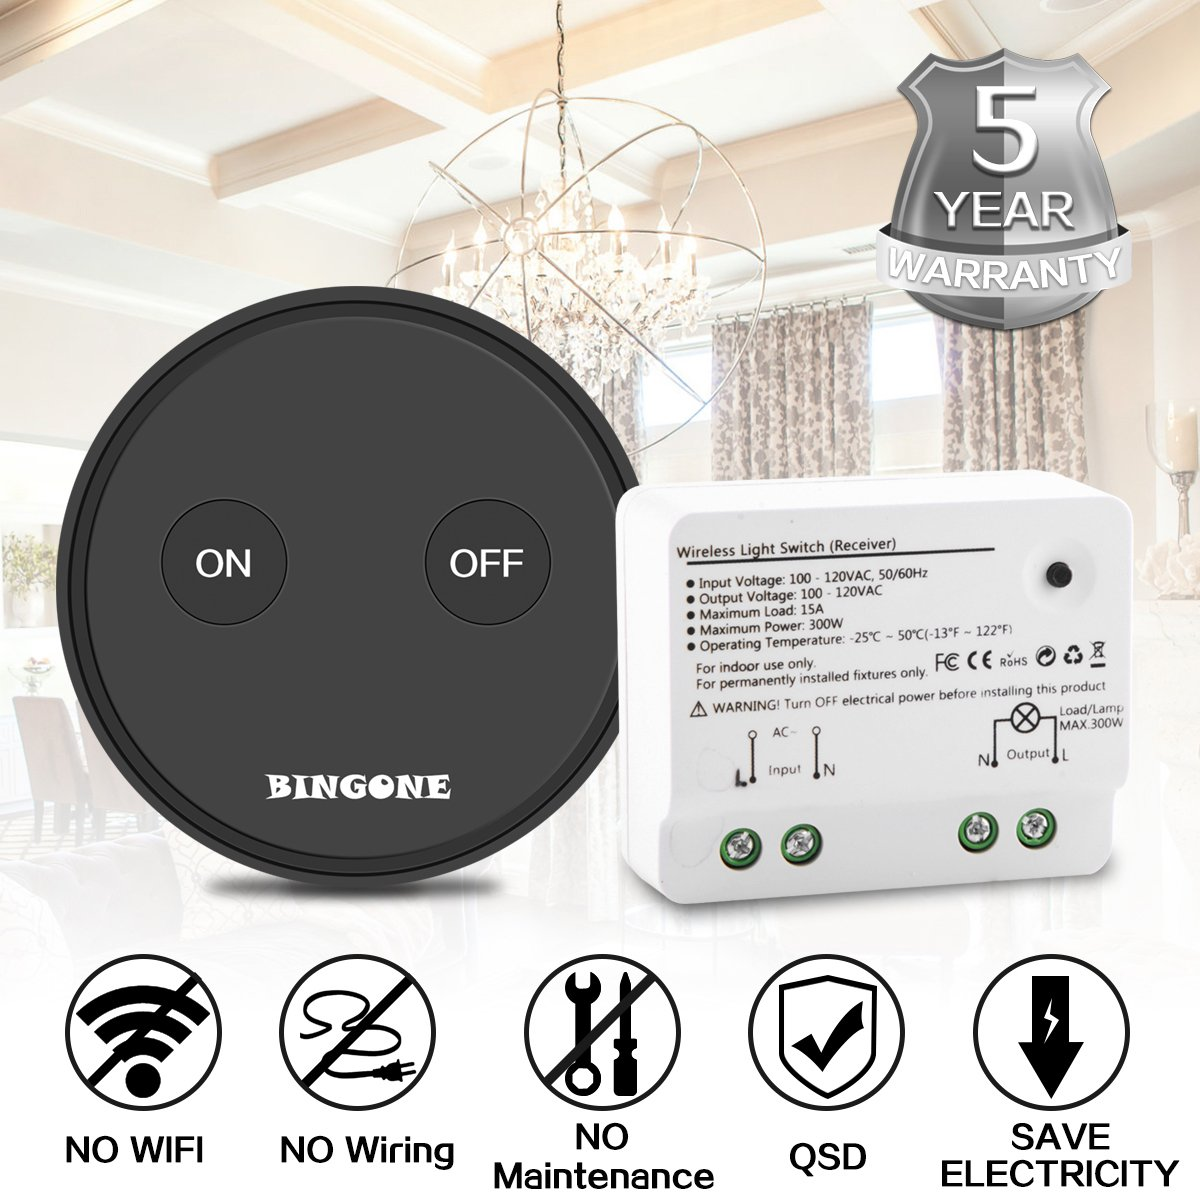 BINGONE Wireless Remote Control Light Switch Kit, Removable On/off ...